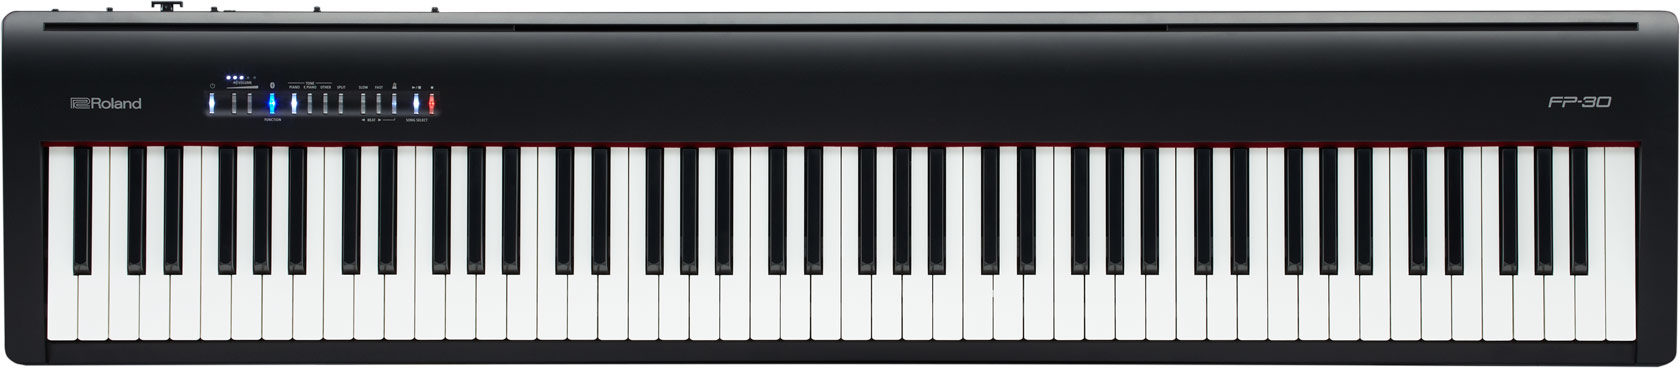 Roland Fp 30 Digital Stage Piano Black